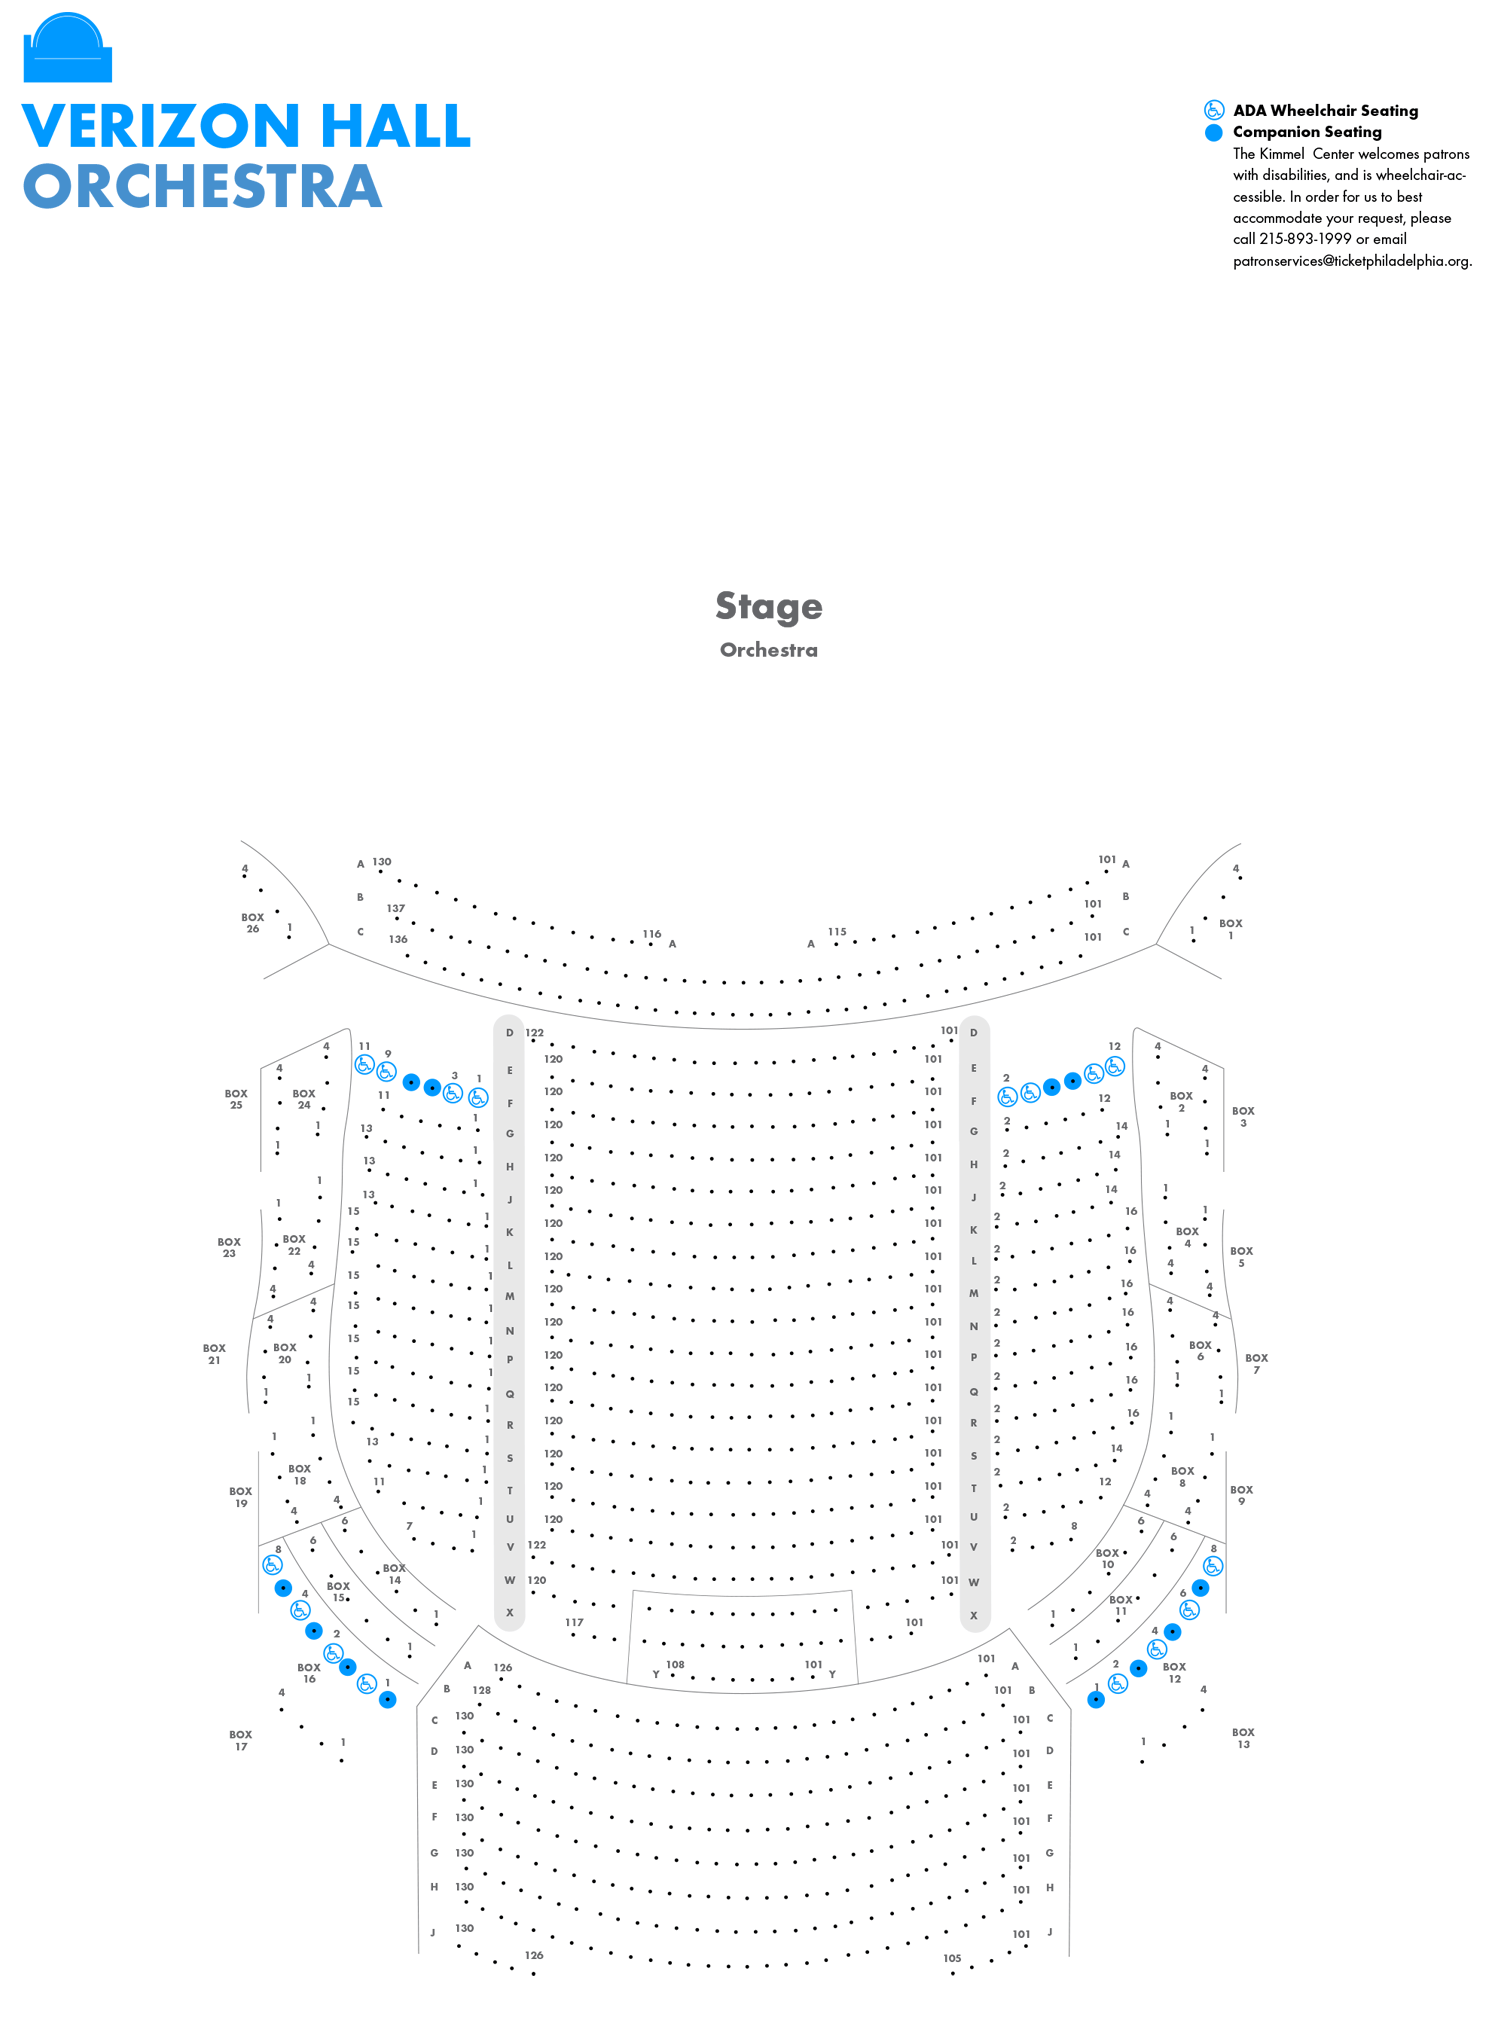 hight resolution of image of verizon hall orchestra level seating chart